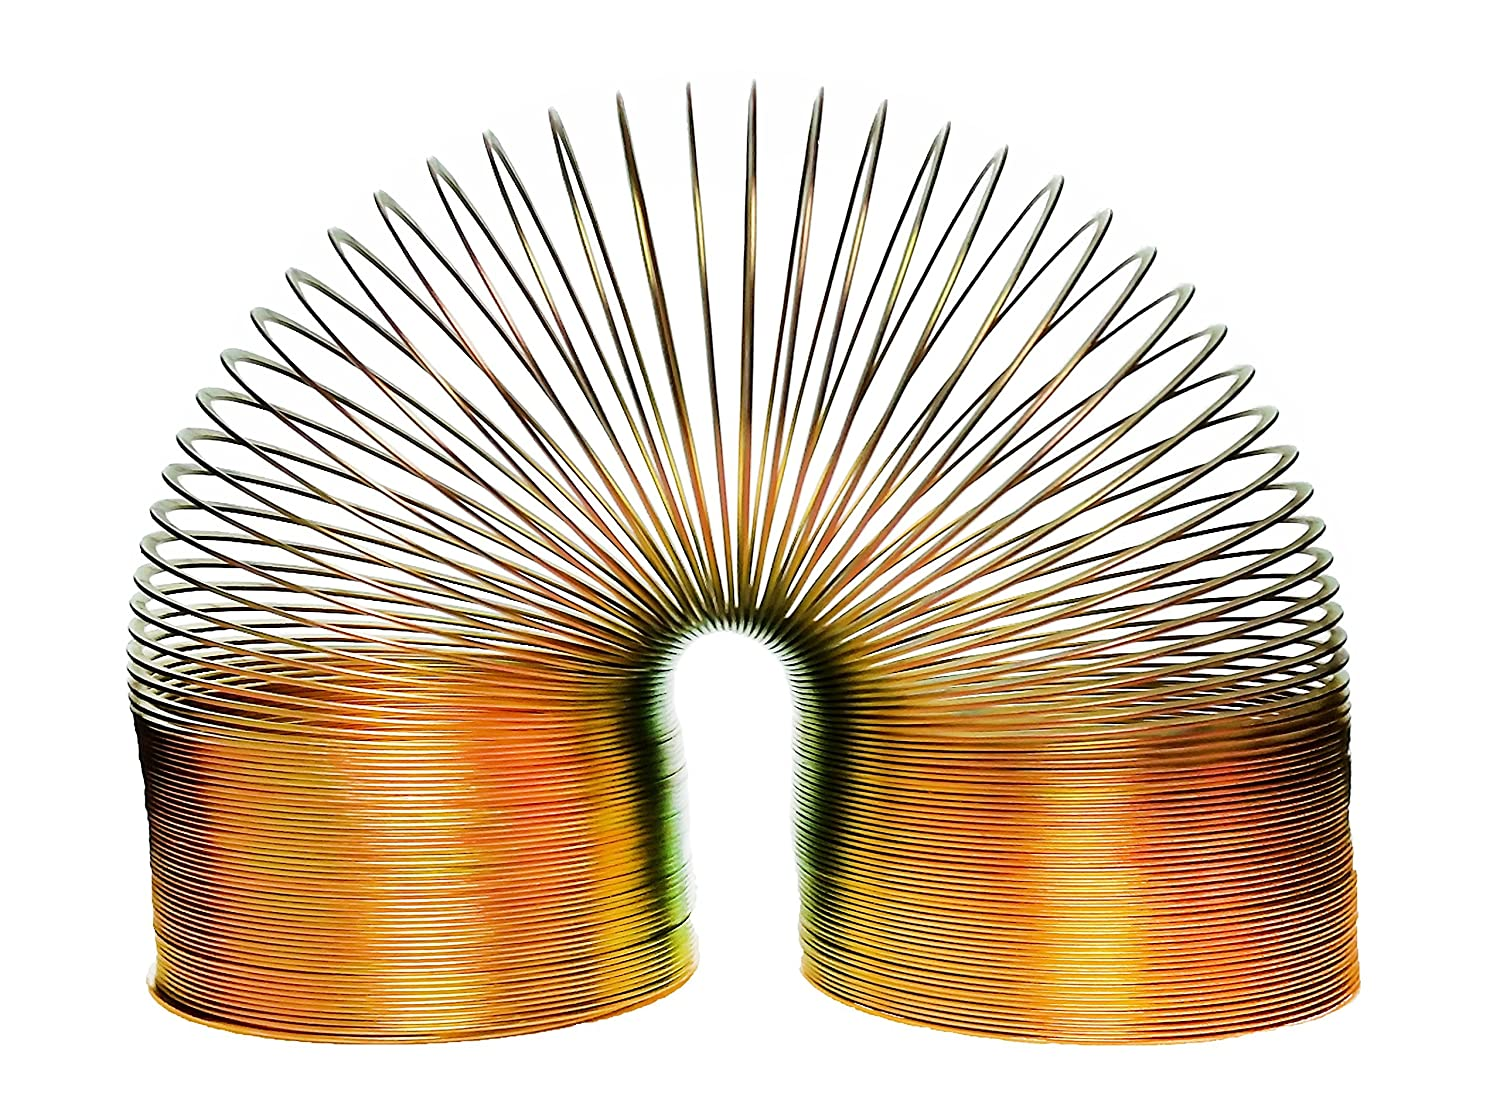 GSC International Helix Slinky - Pack of 10 free shipping